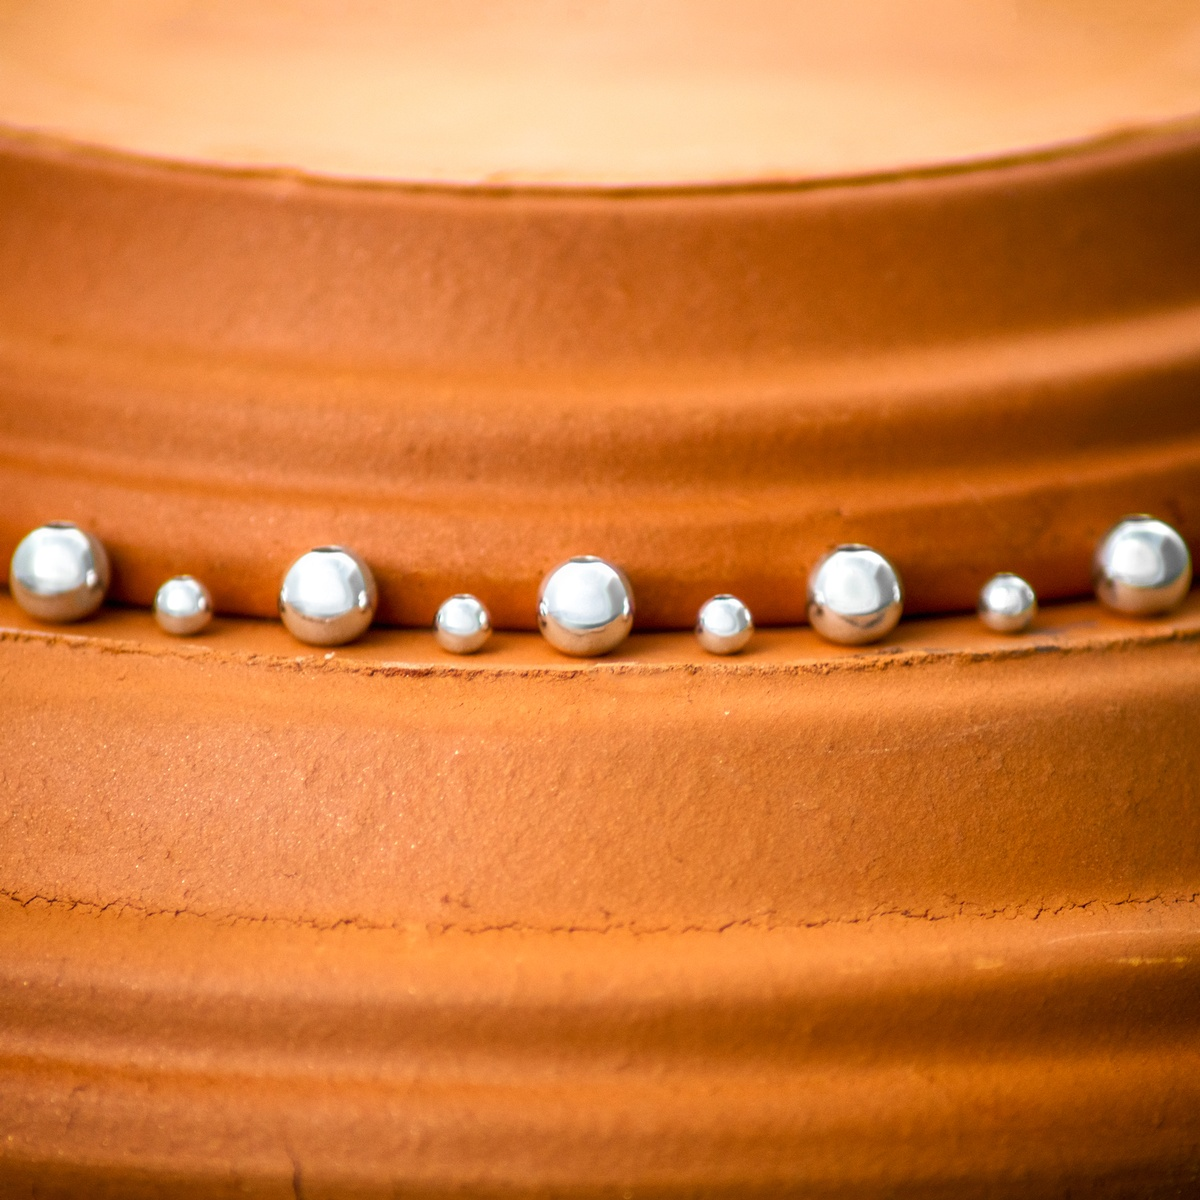 Sterling Silver beads that have been slightly desaturated on terra-cotta pot